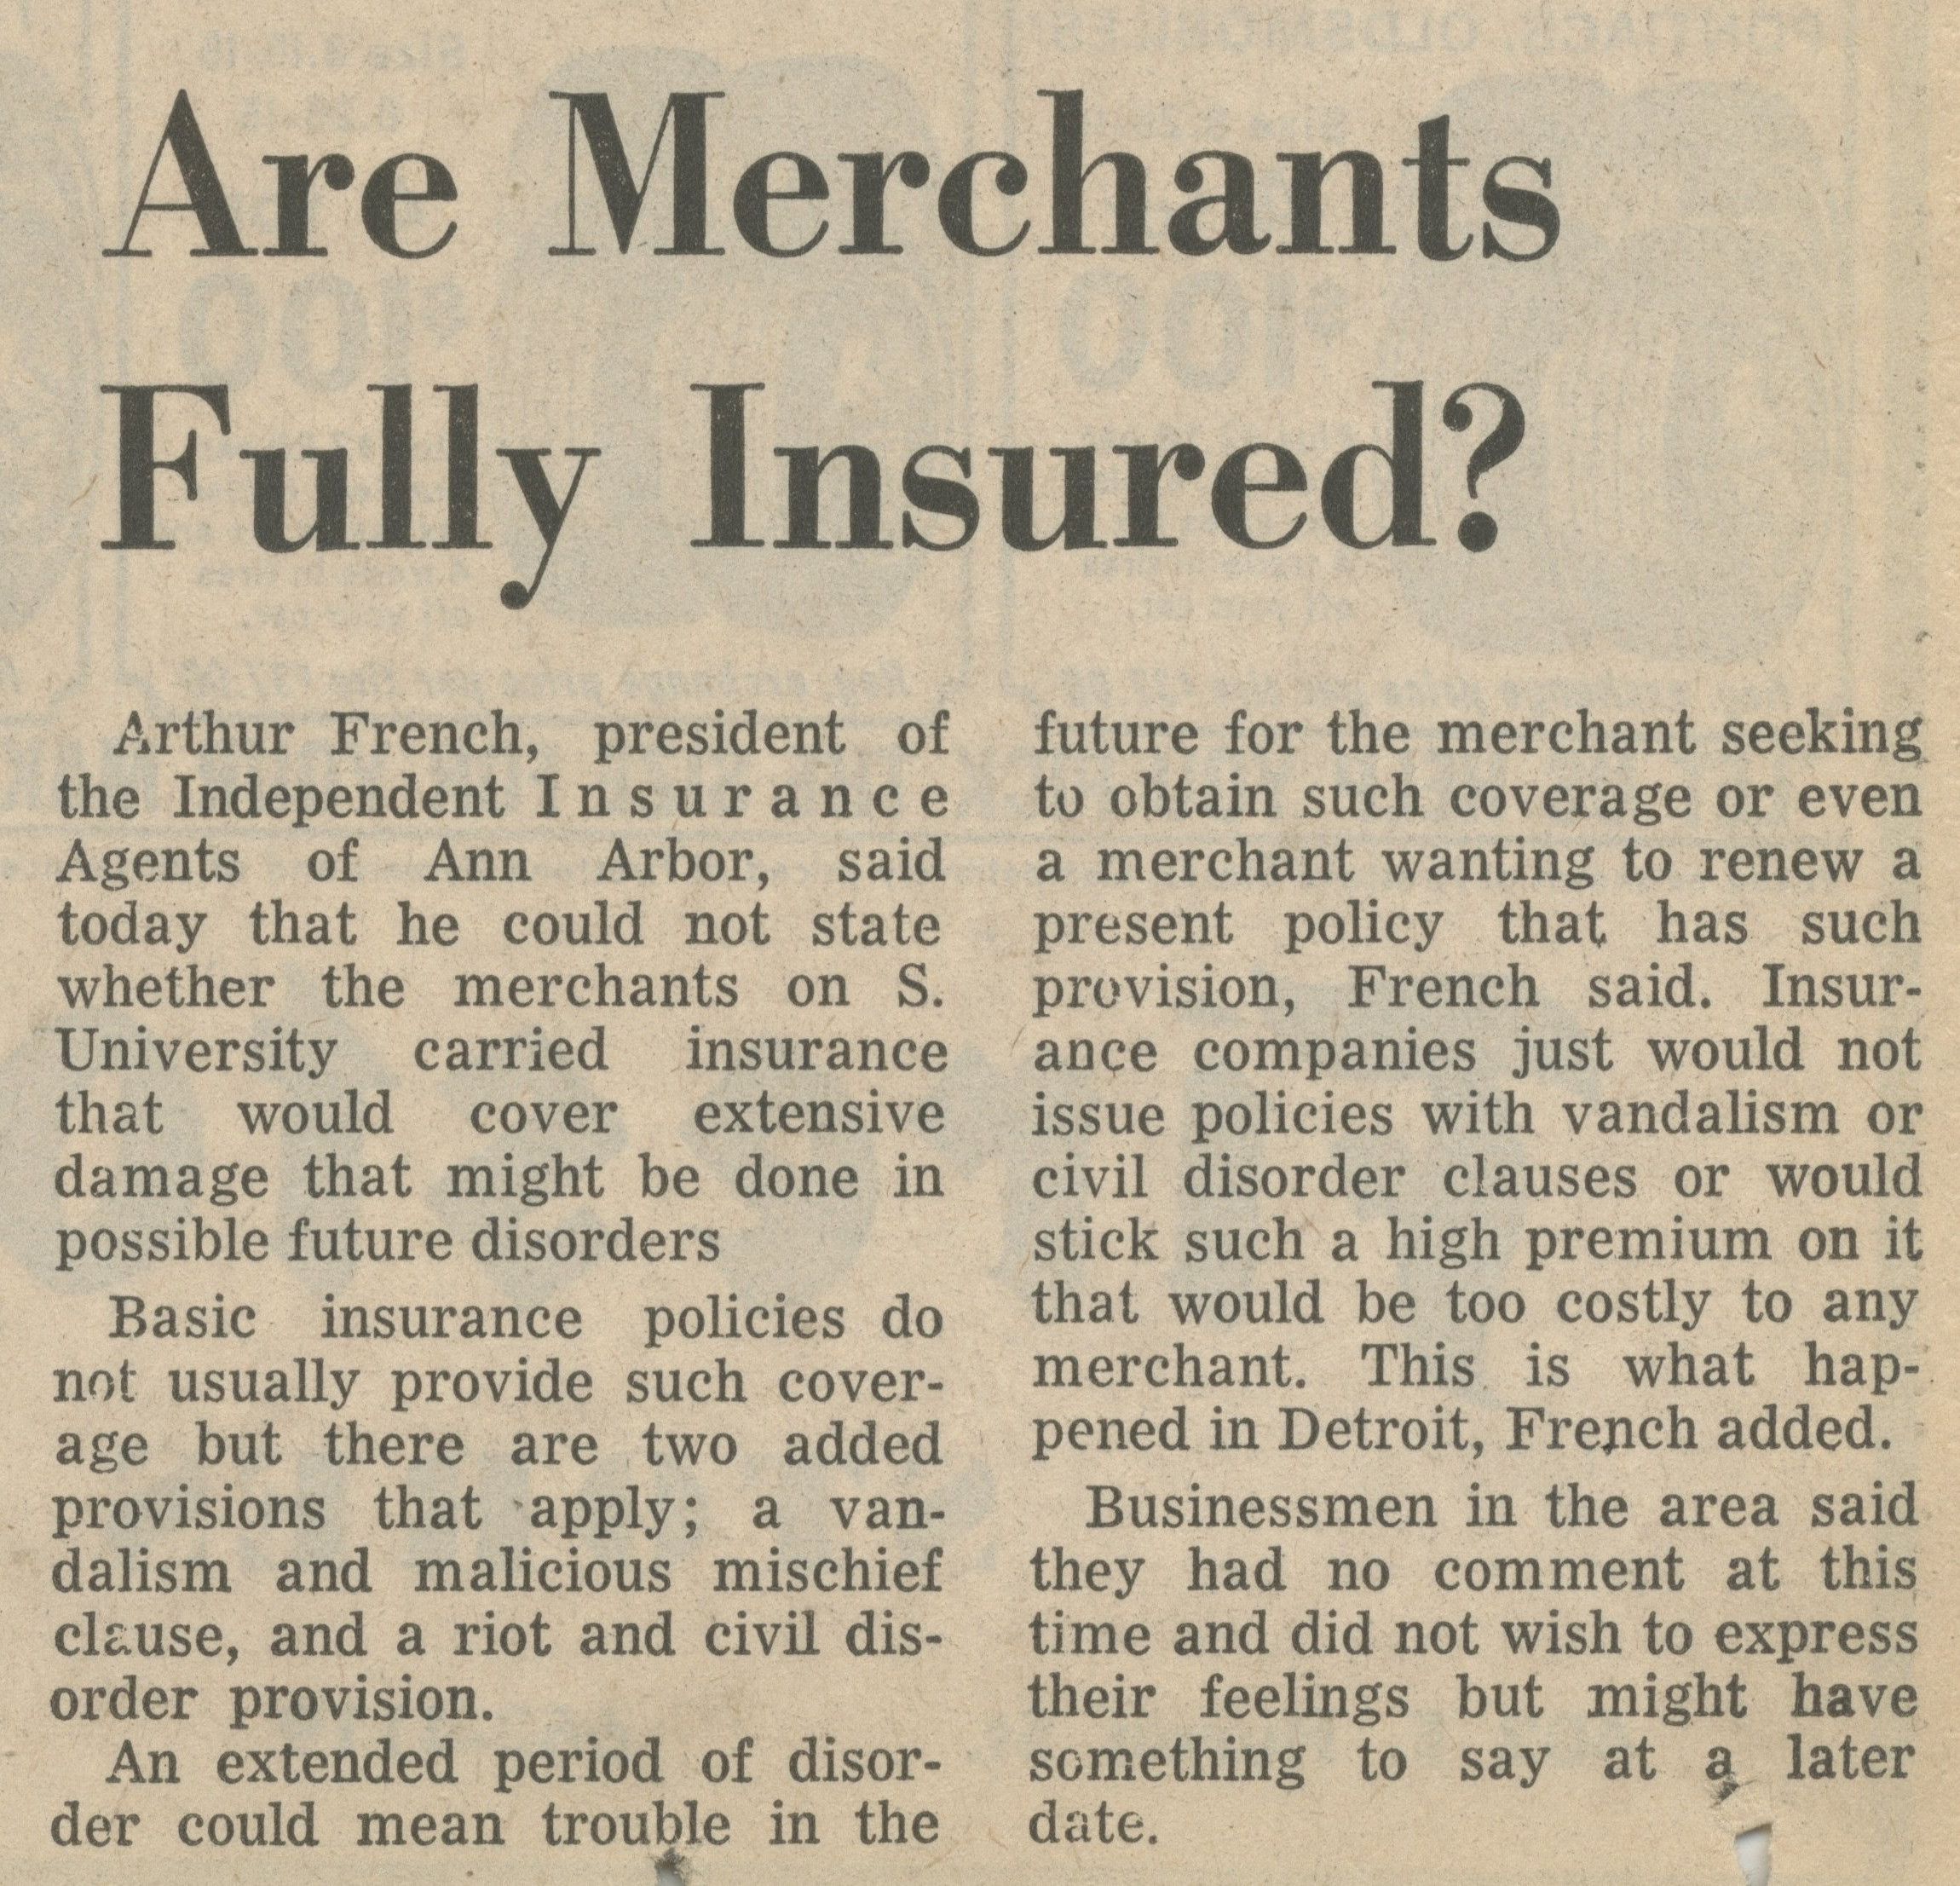 Are Merchants Fully Insured? image